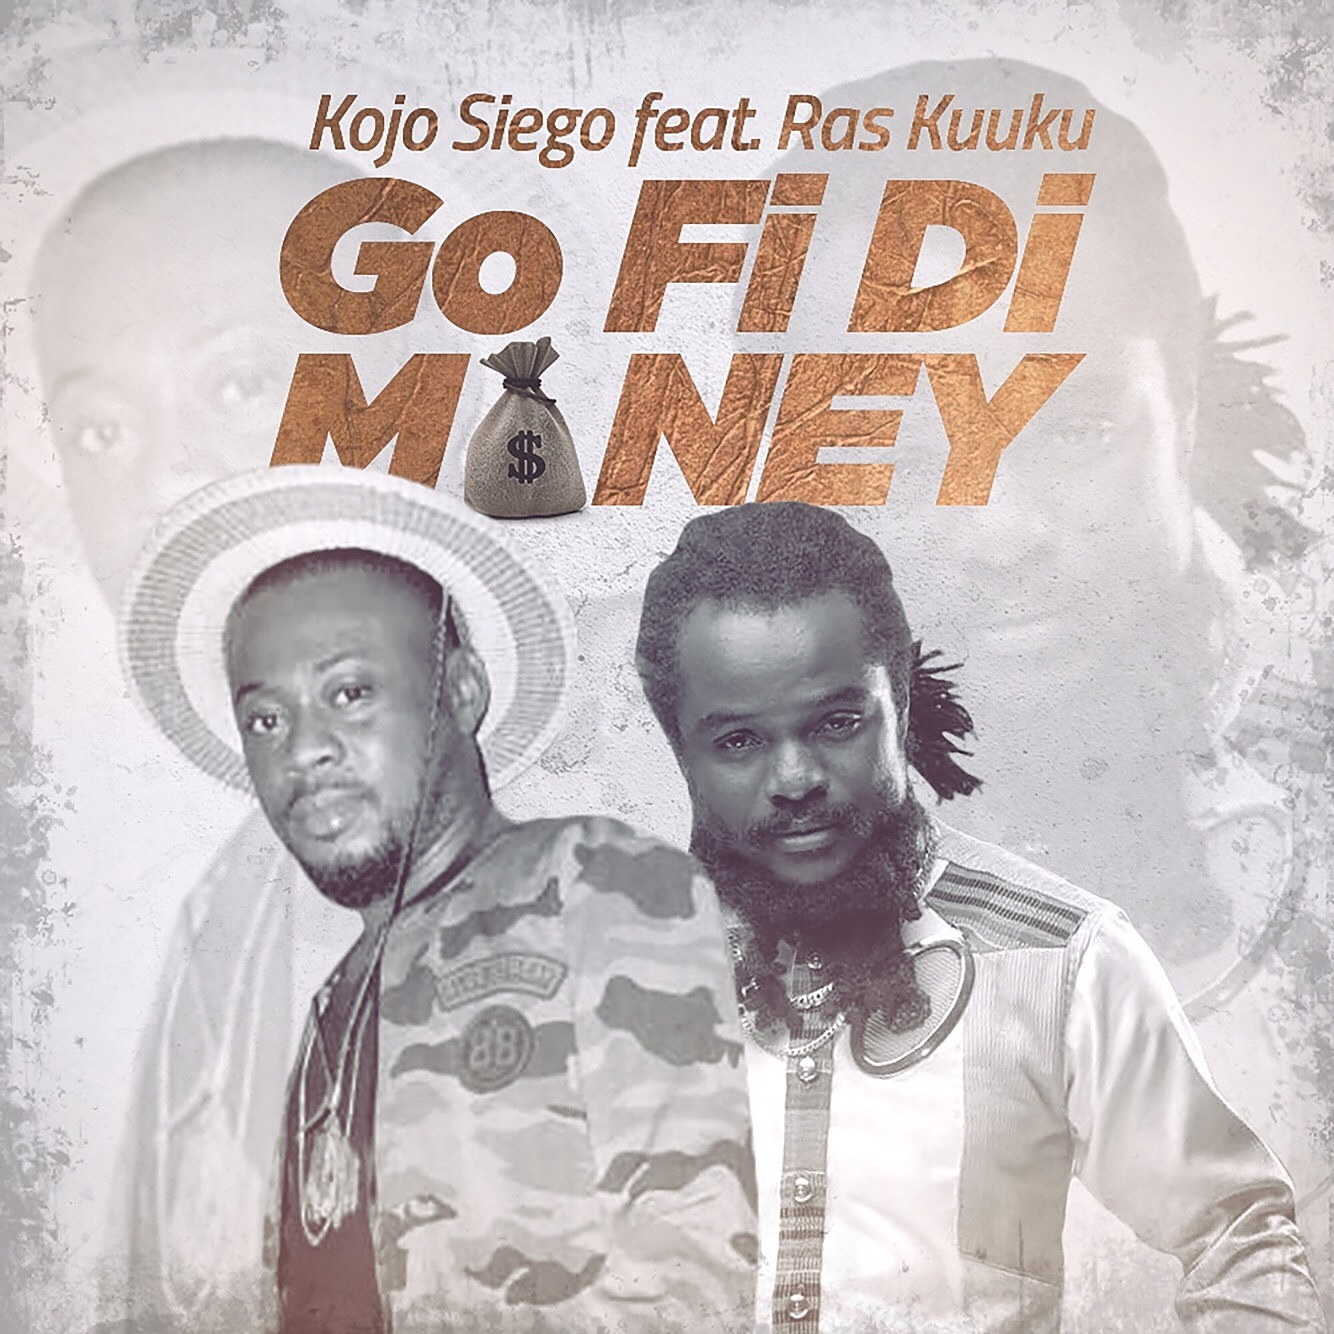 Listen Up: Kojo Siego features Ras Kuuku on 'Go Fi Di Money'